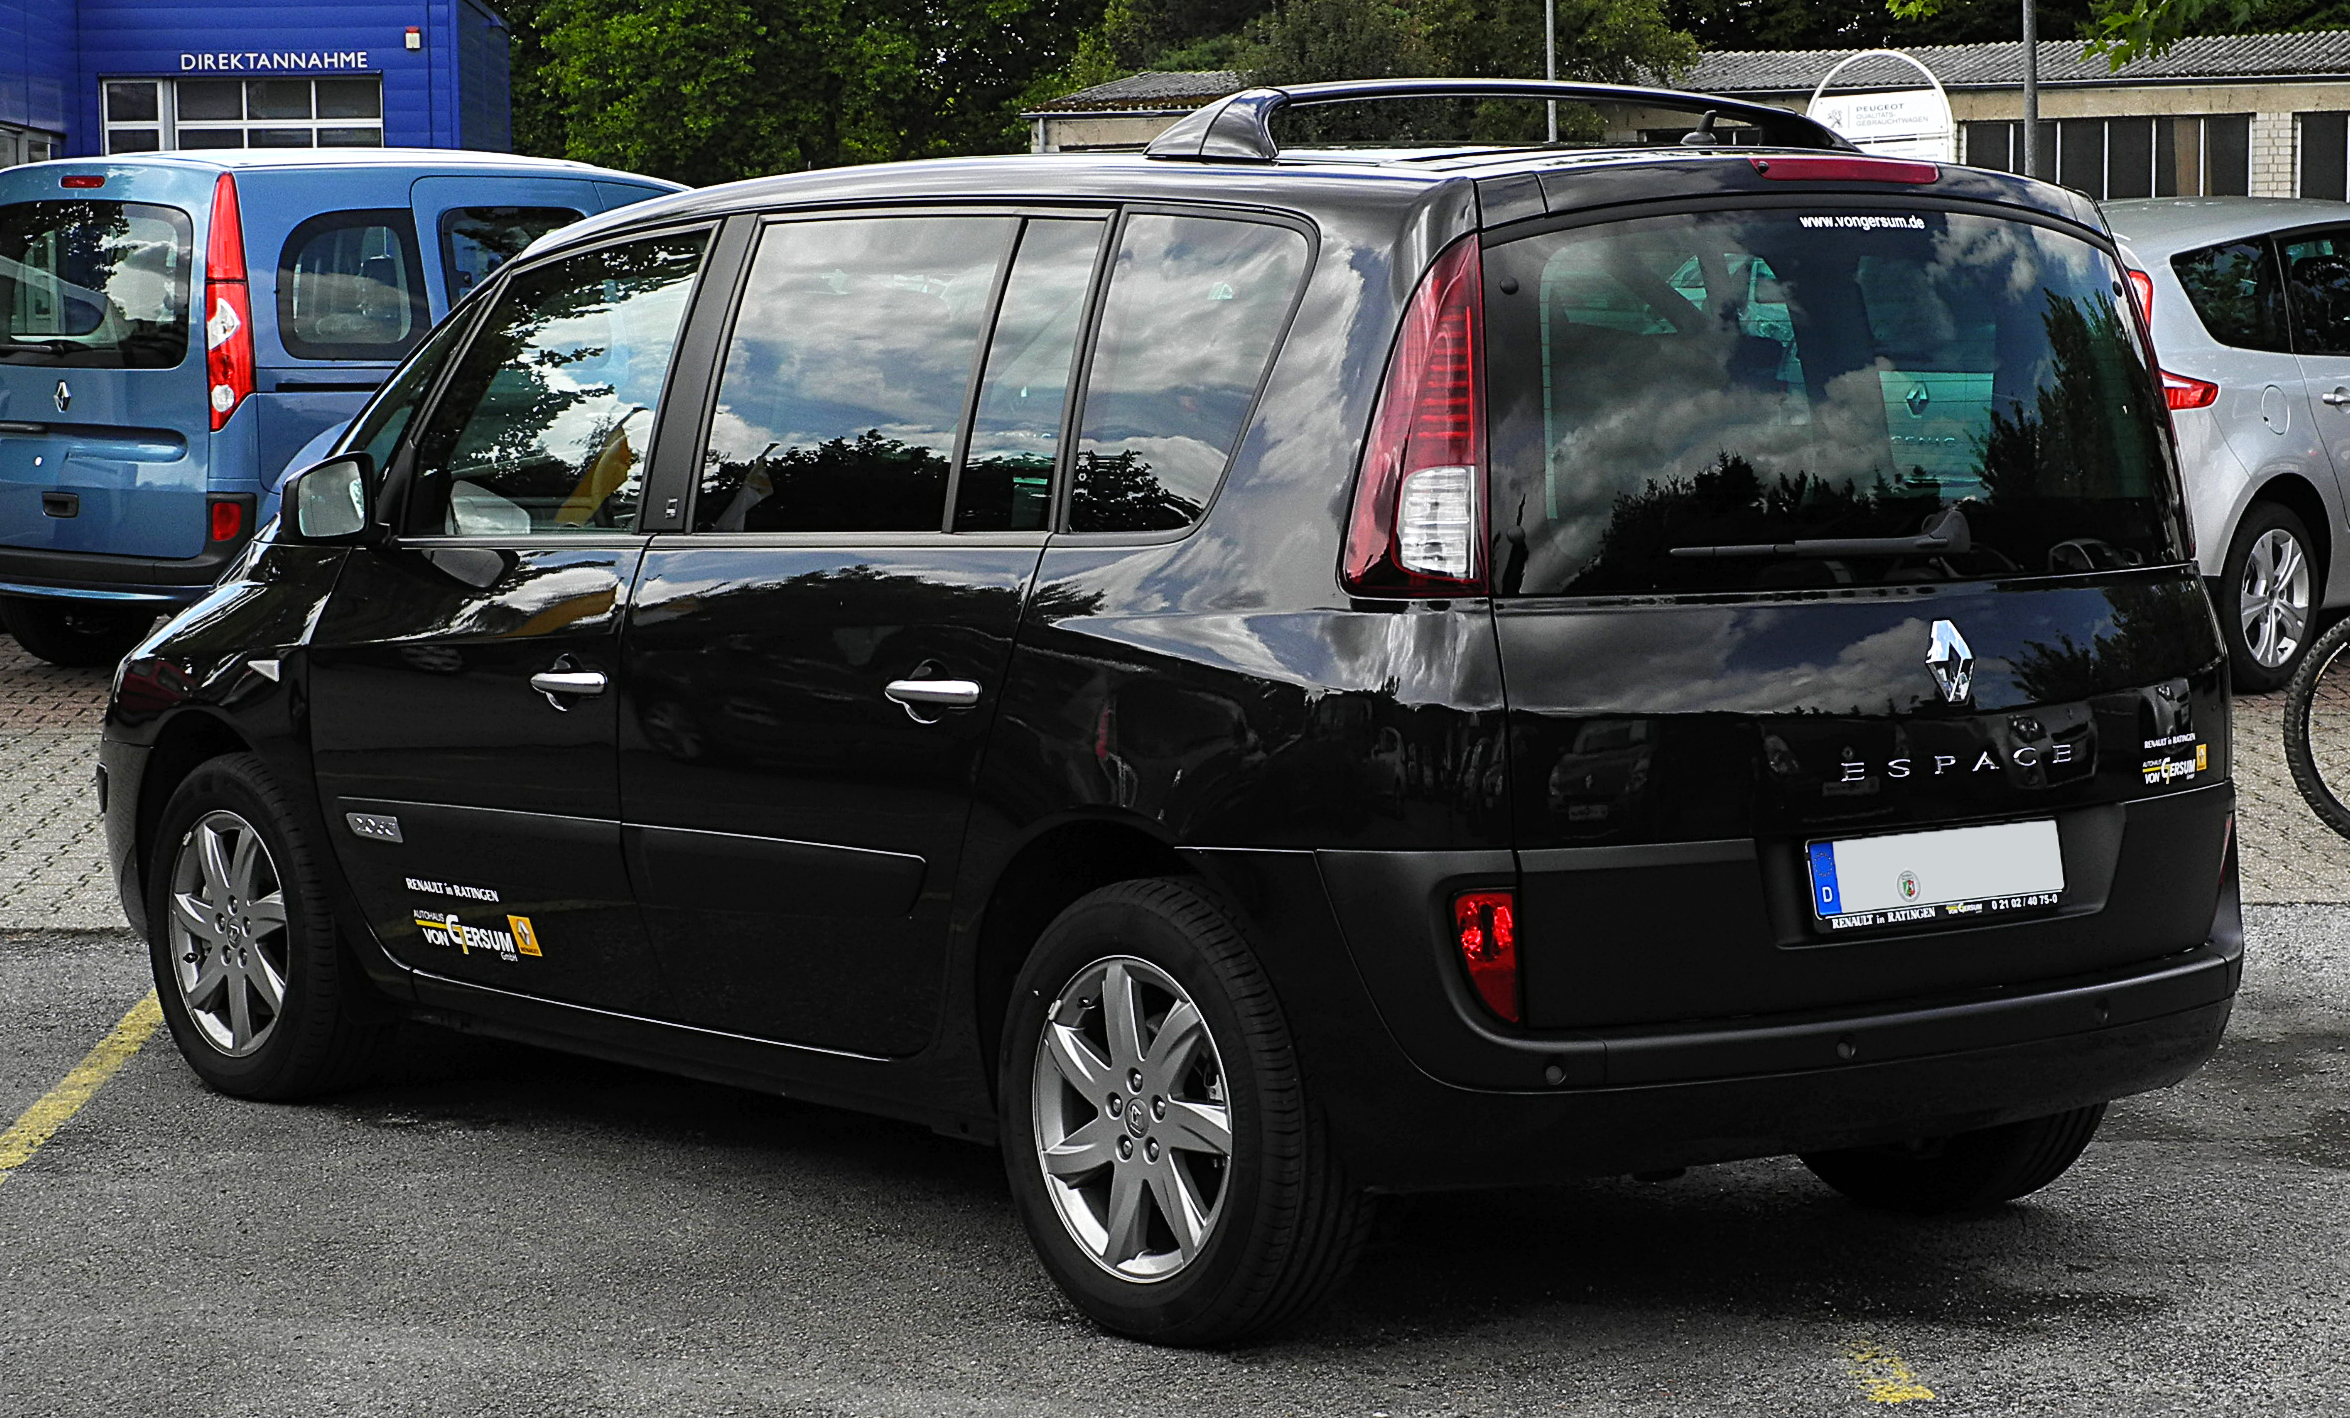 file renault espace edition 25th dci 175 iv facelift heckansicht 17 juli 2011 ratingen. Black Bedroom Furniture Sets. Home Design Ideas